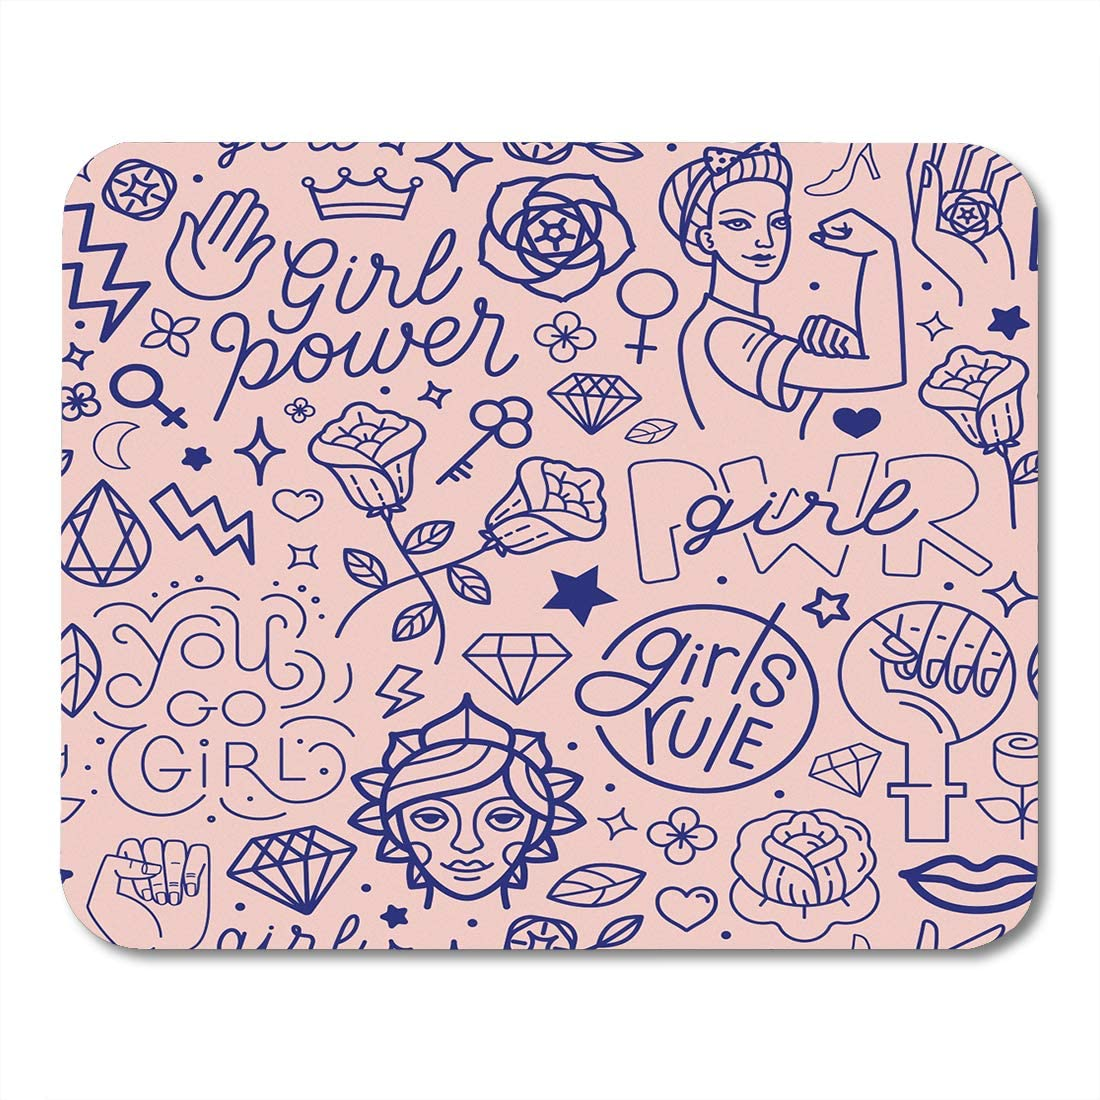 Emvency Mouse Pads Pink Pattern and Hand Lettering Phrases Related to Girl Power Feminist Movement Abstract Female Mouse pad 9.5 x 7.9 For Notebooks,Desktop Computers Mini Office Supplies Mouse Mats